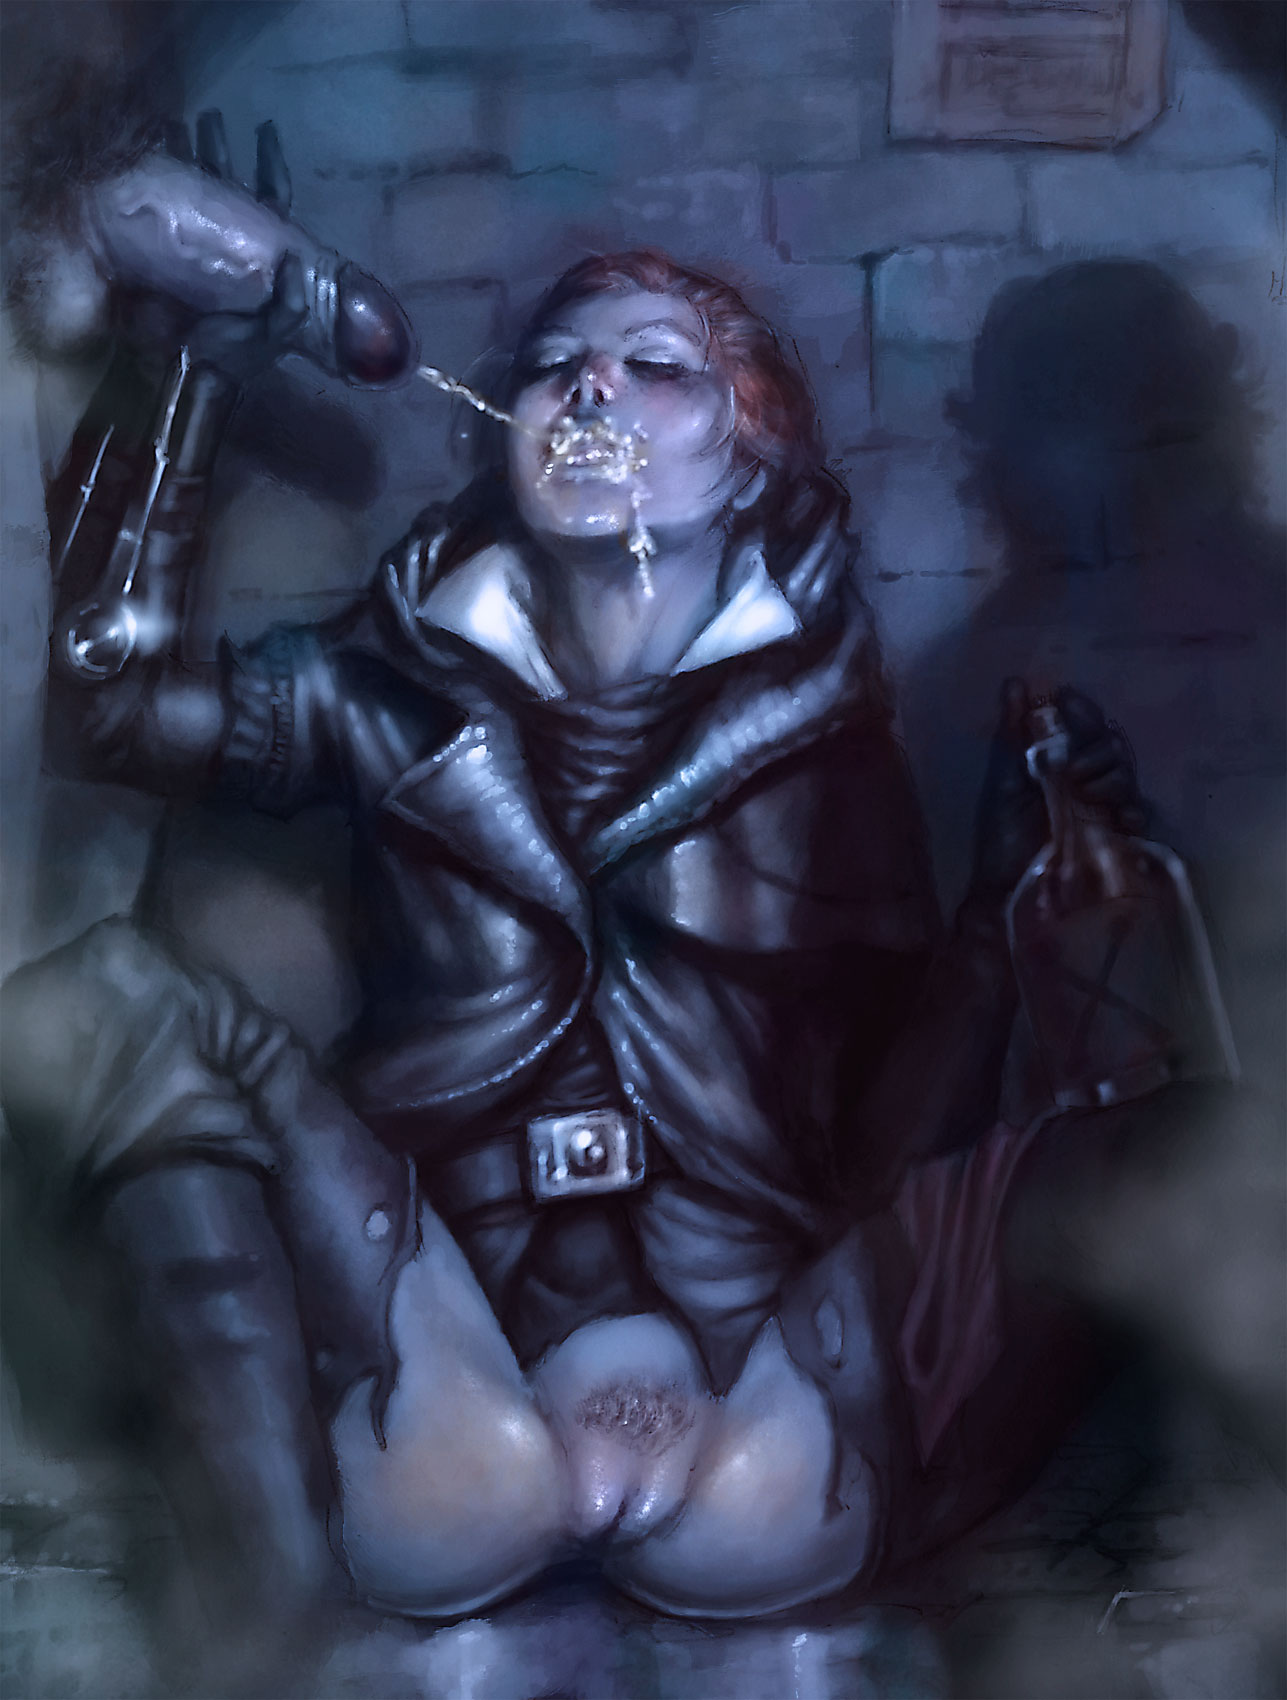 assassin's creed syndicate Harley quinn poison ivy porn